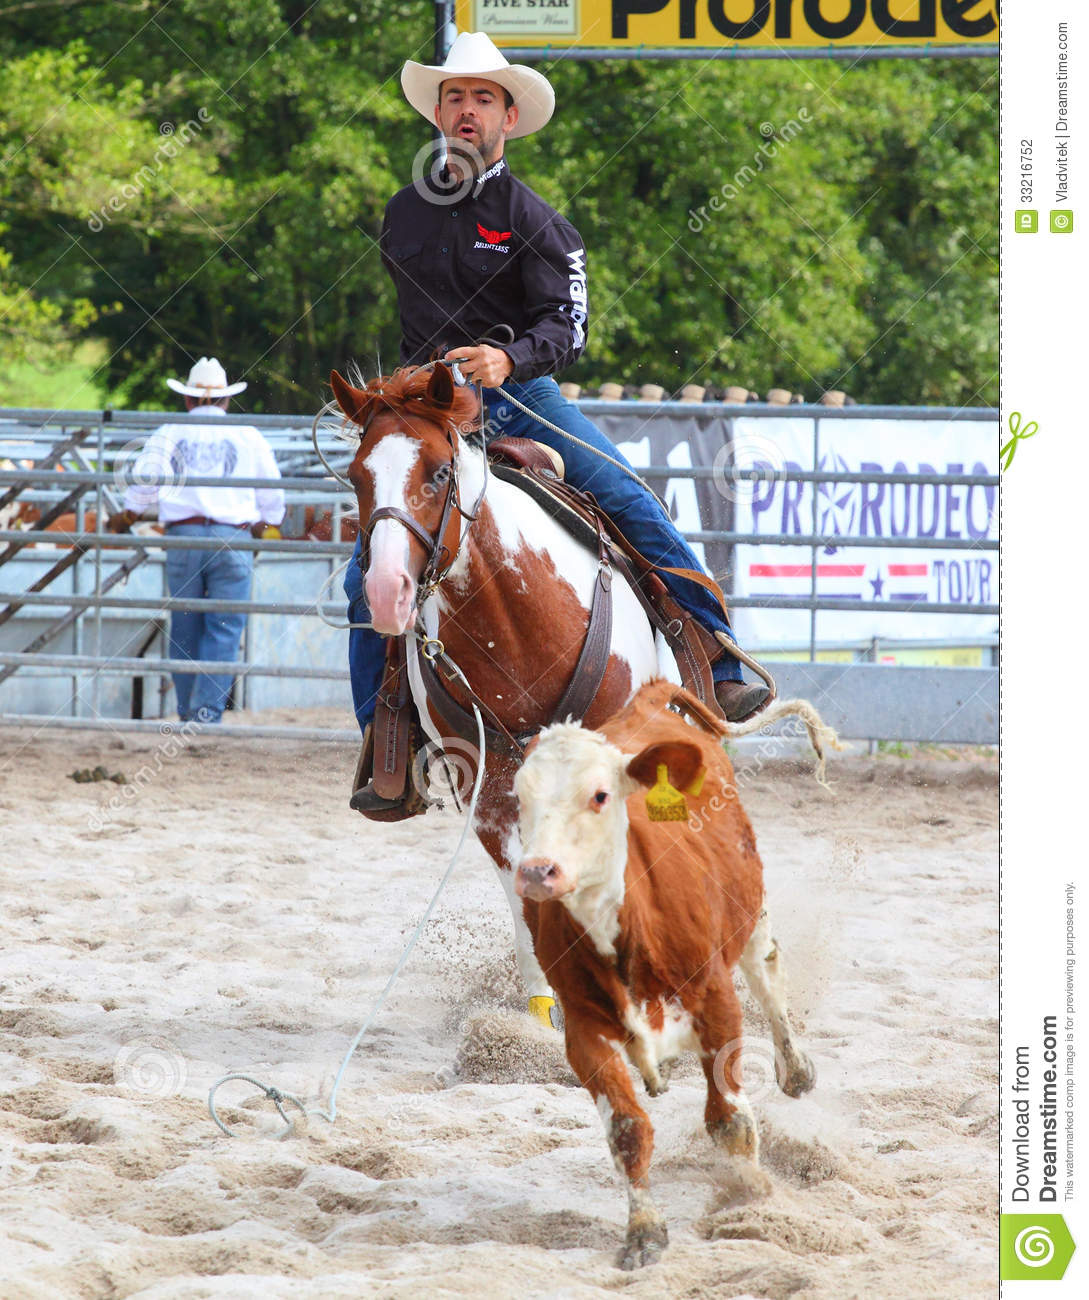 The Cowboy In A Calf Roping Competition Editorial